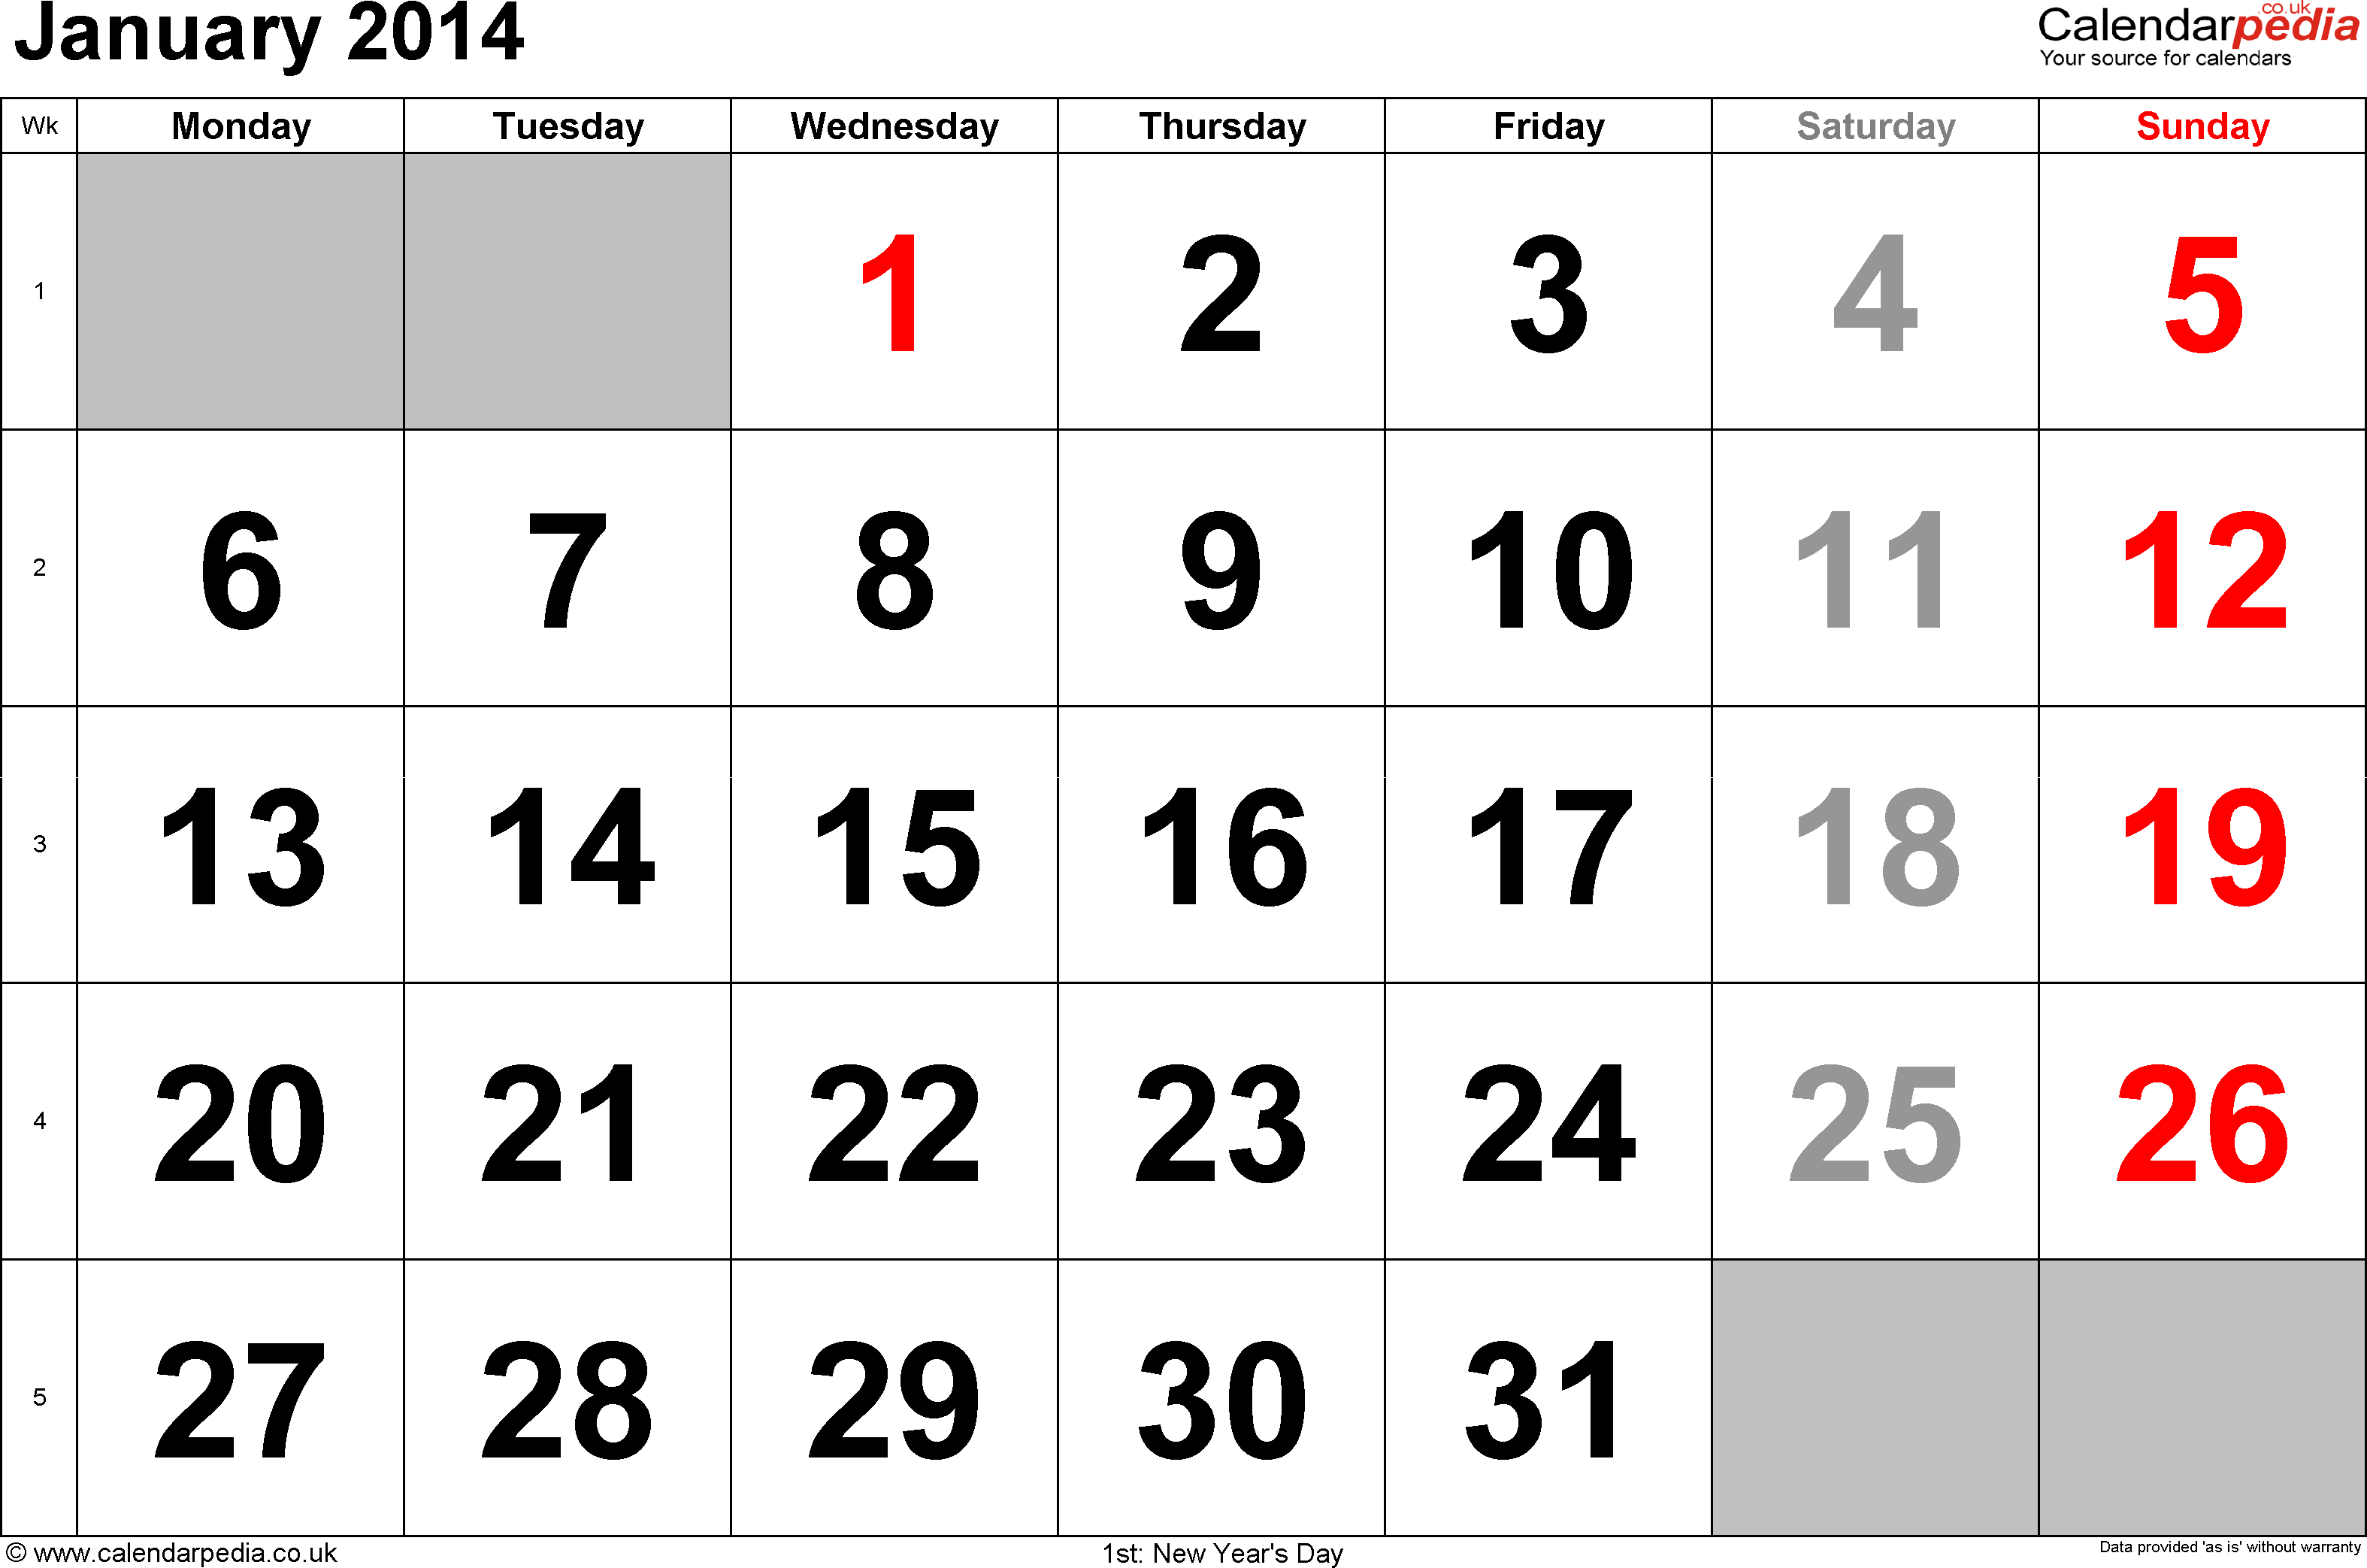 November 2014 Calendar with Holidays